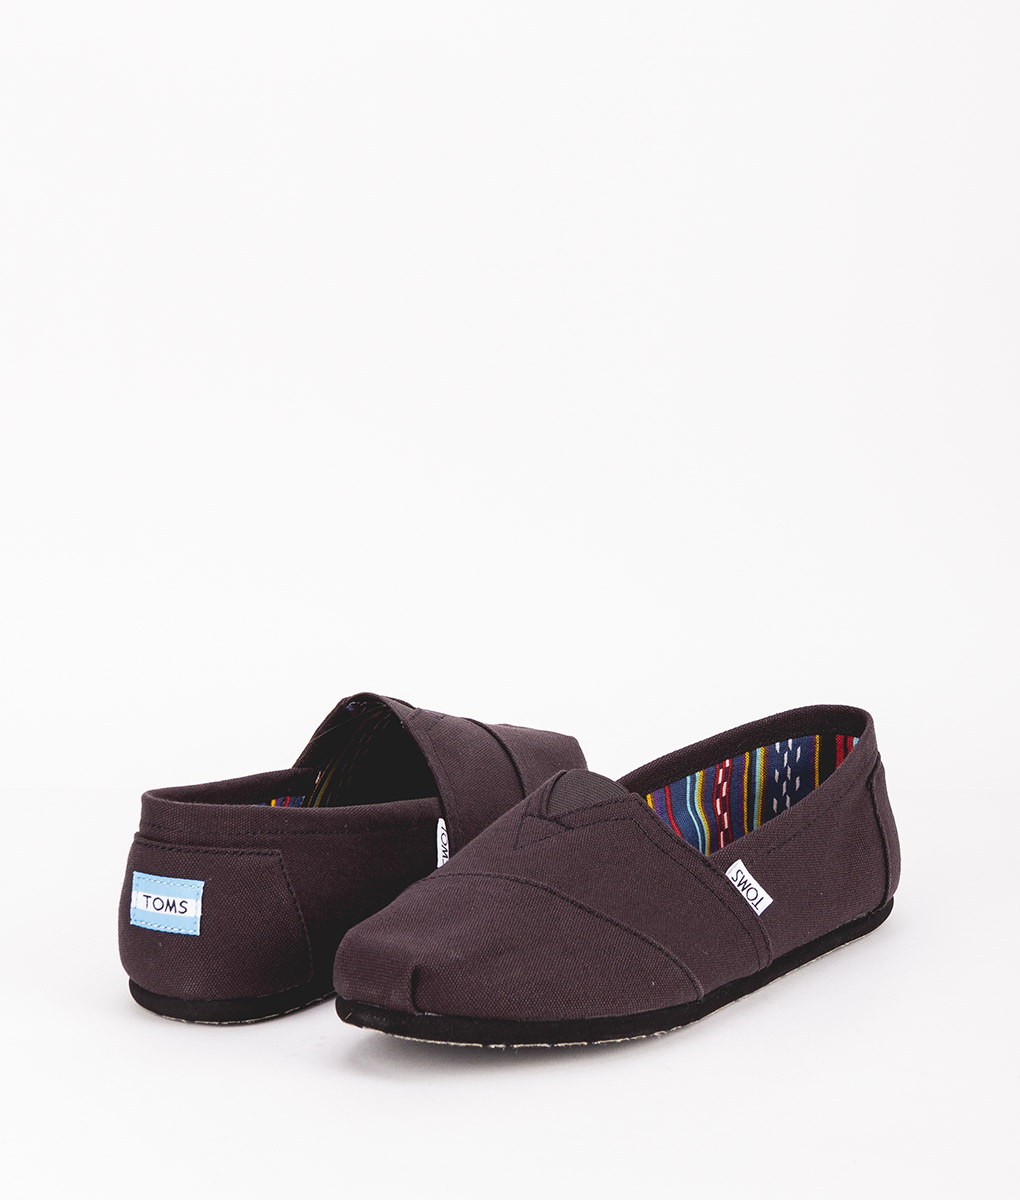 TOMS Men Espadrilles 2931 CANVAS M CLASSIC, Black Black 49.99 1